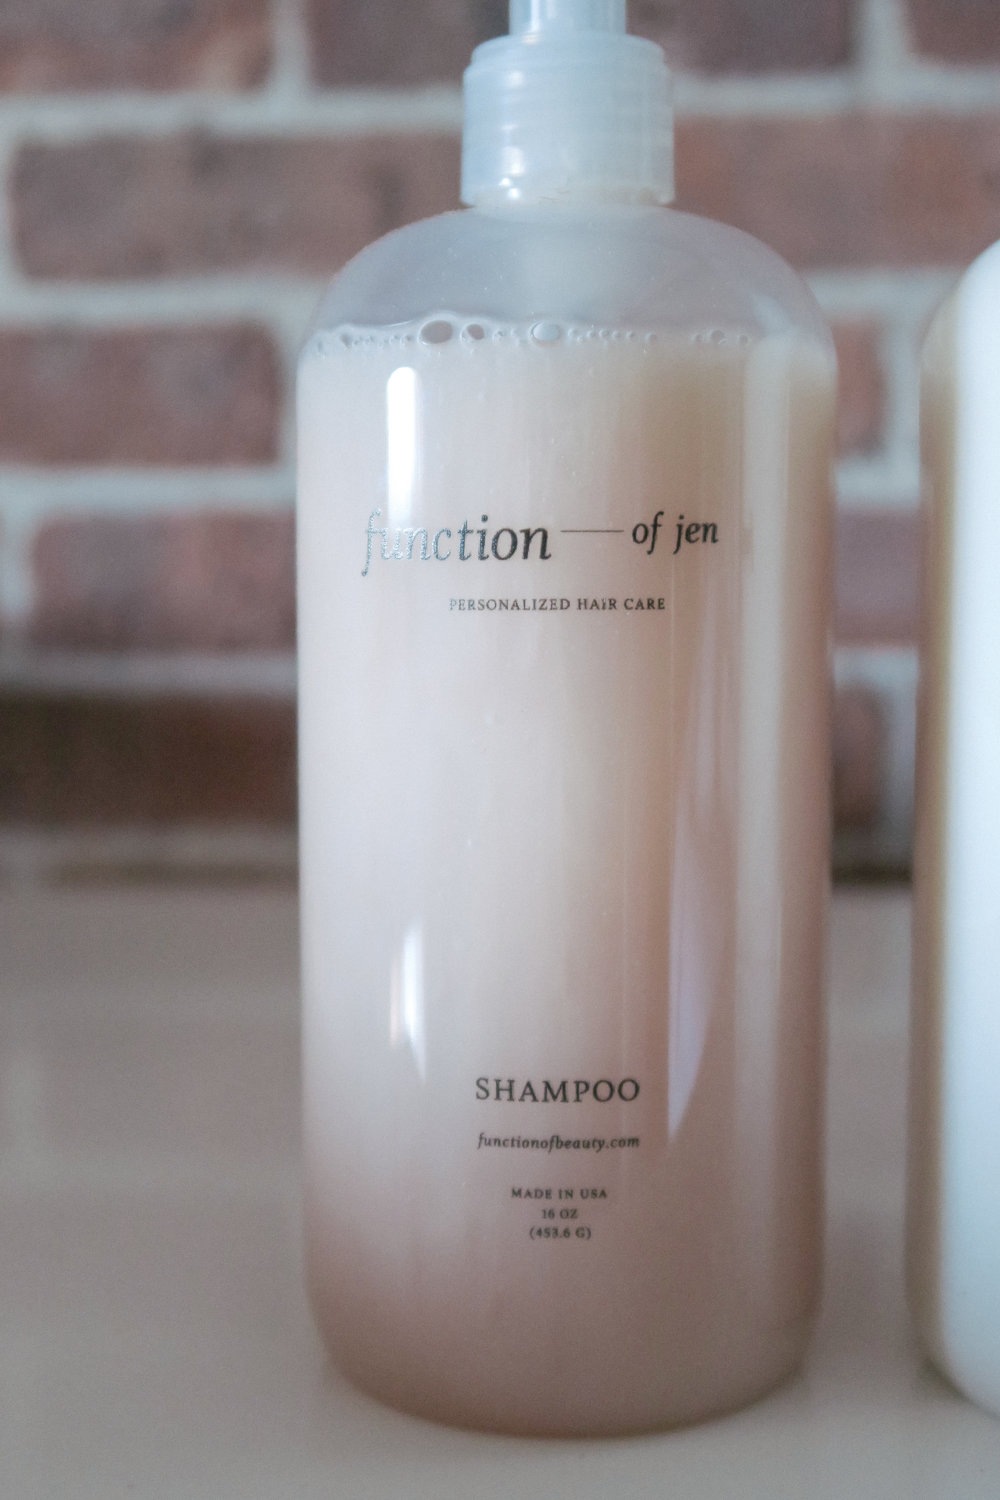 Function of Beauty - Personalized Hair Care | affecionada